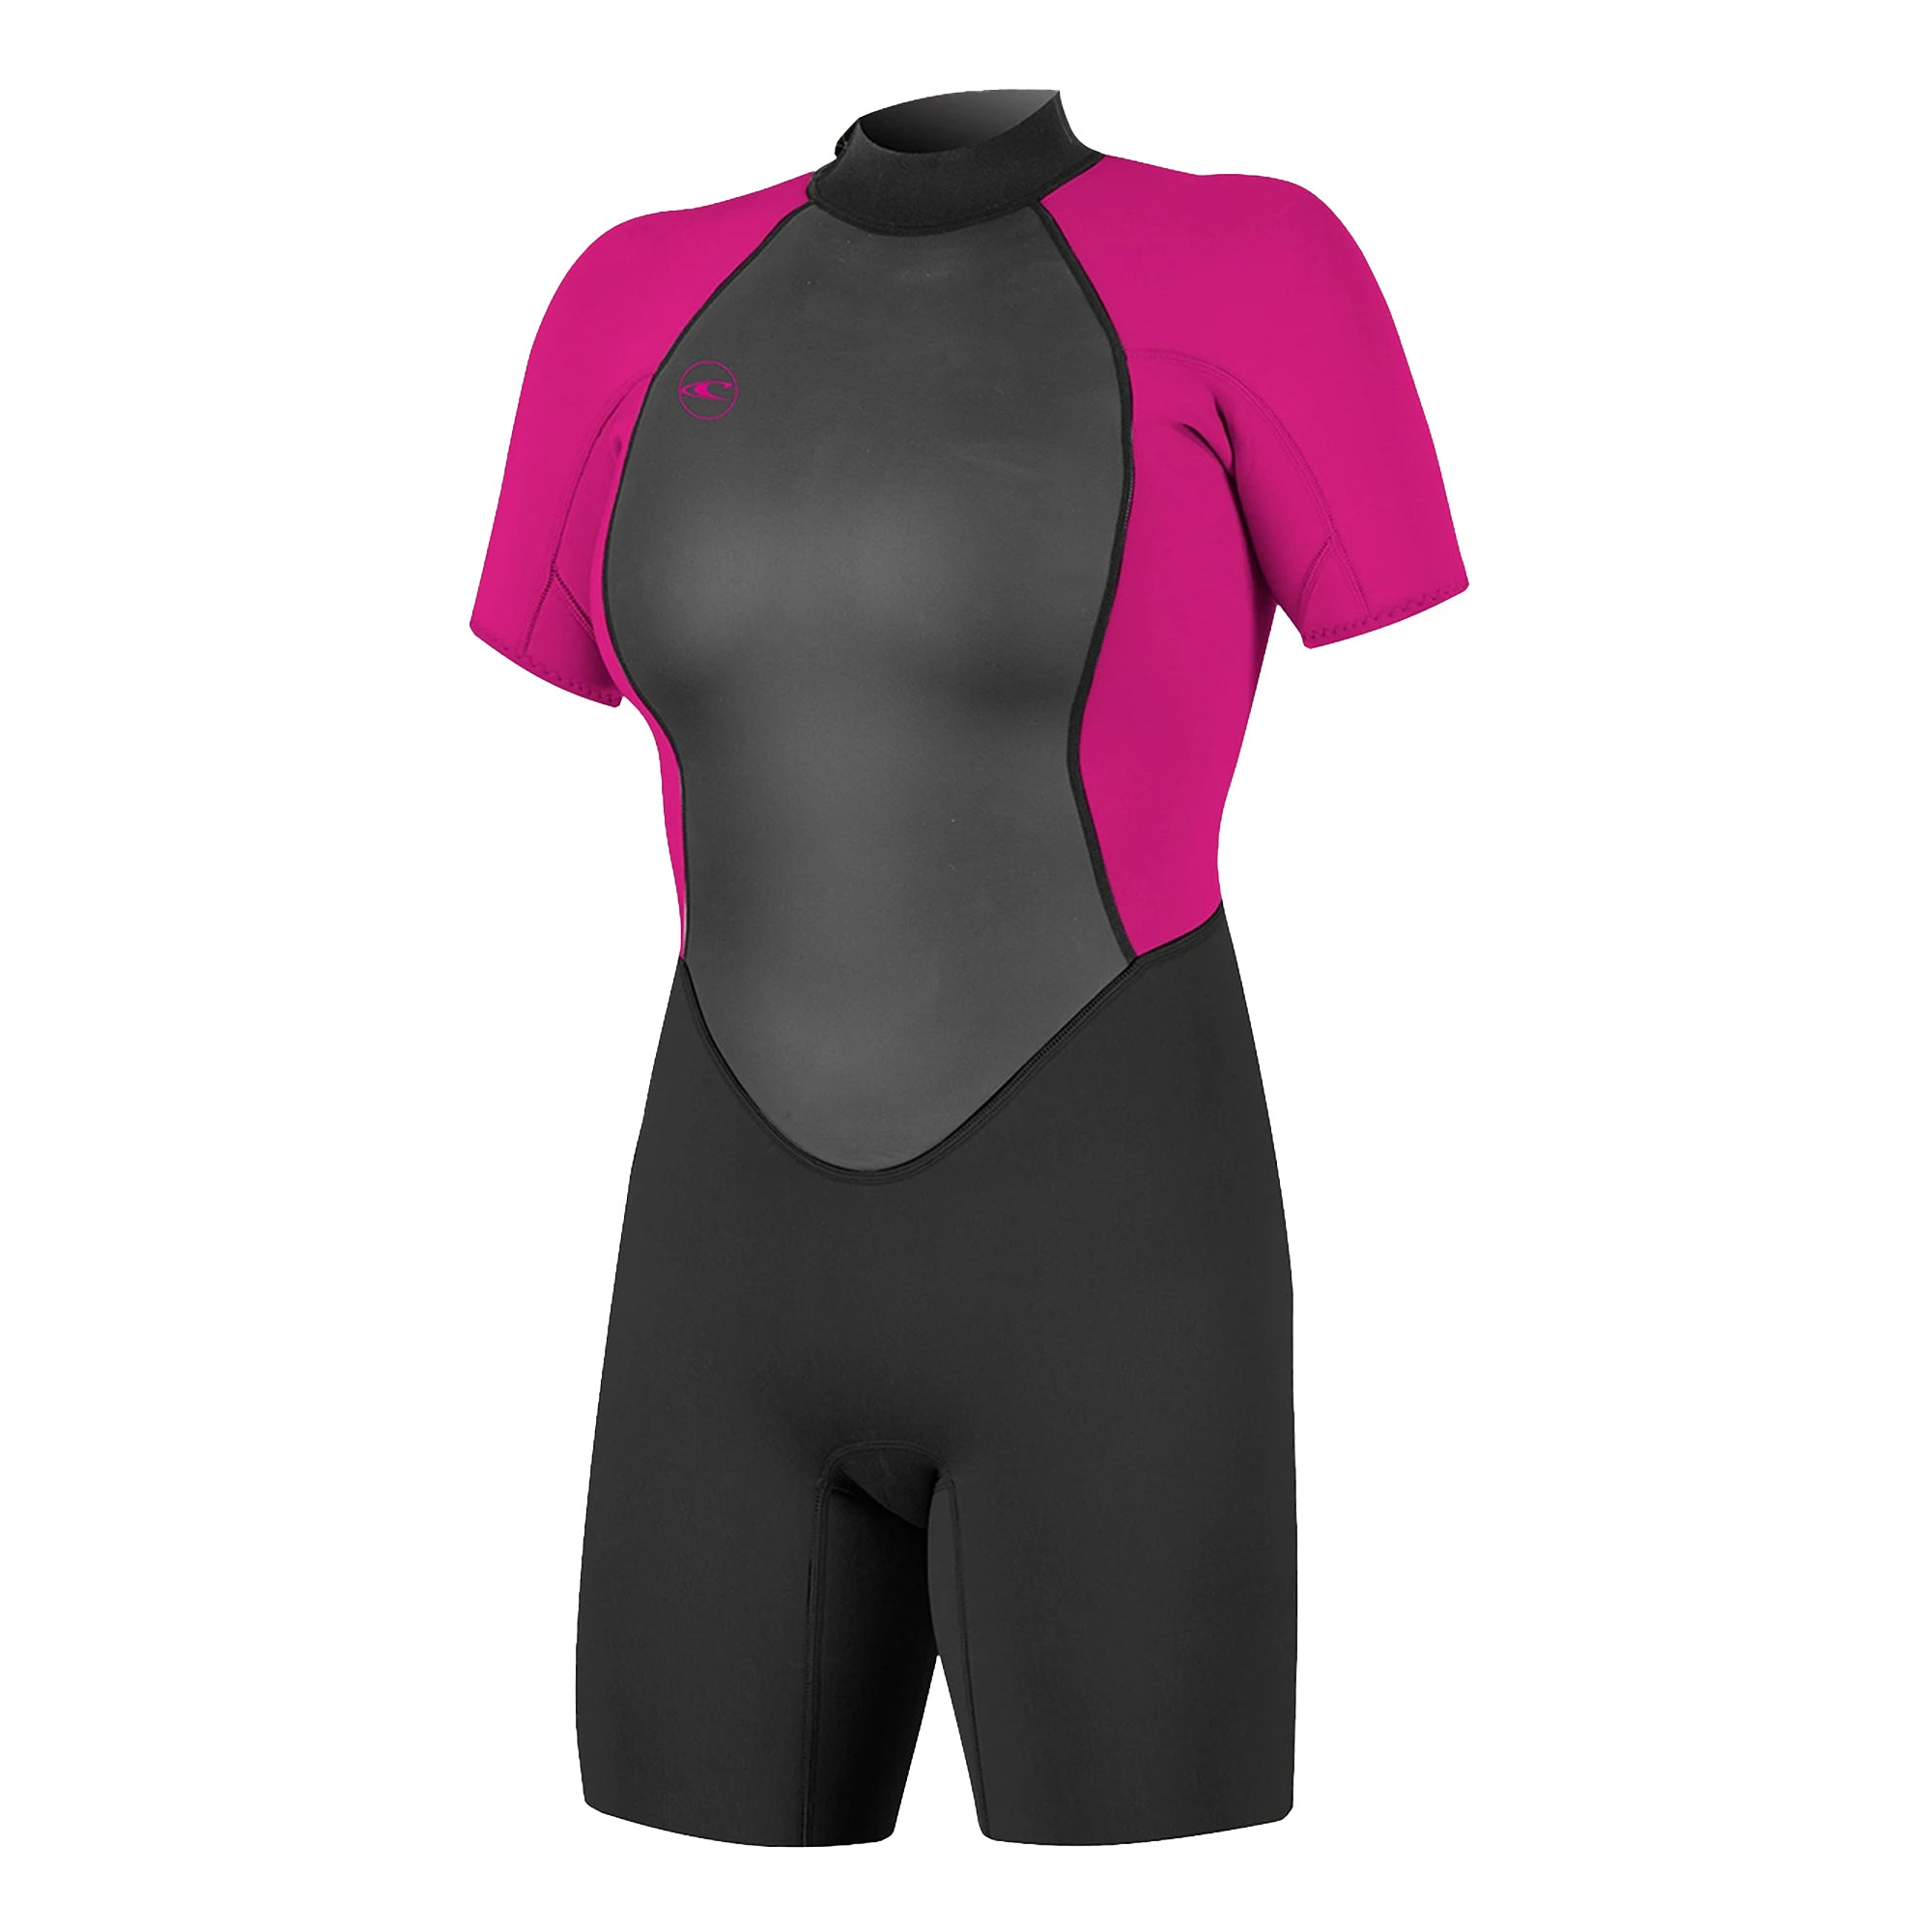 O'Neill Reactor II 2mm Women's Back Zip Spring Suit Wetsuit